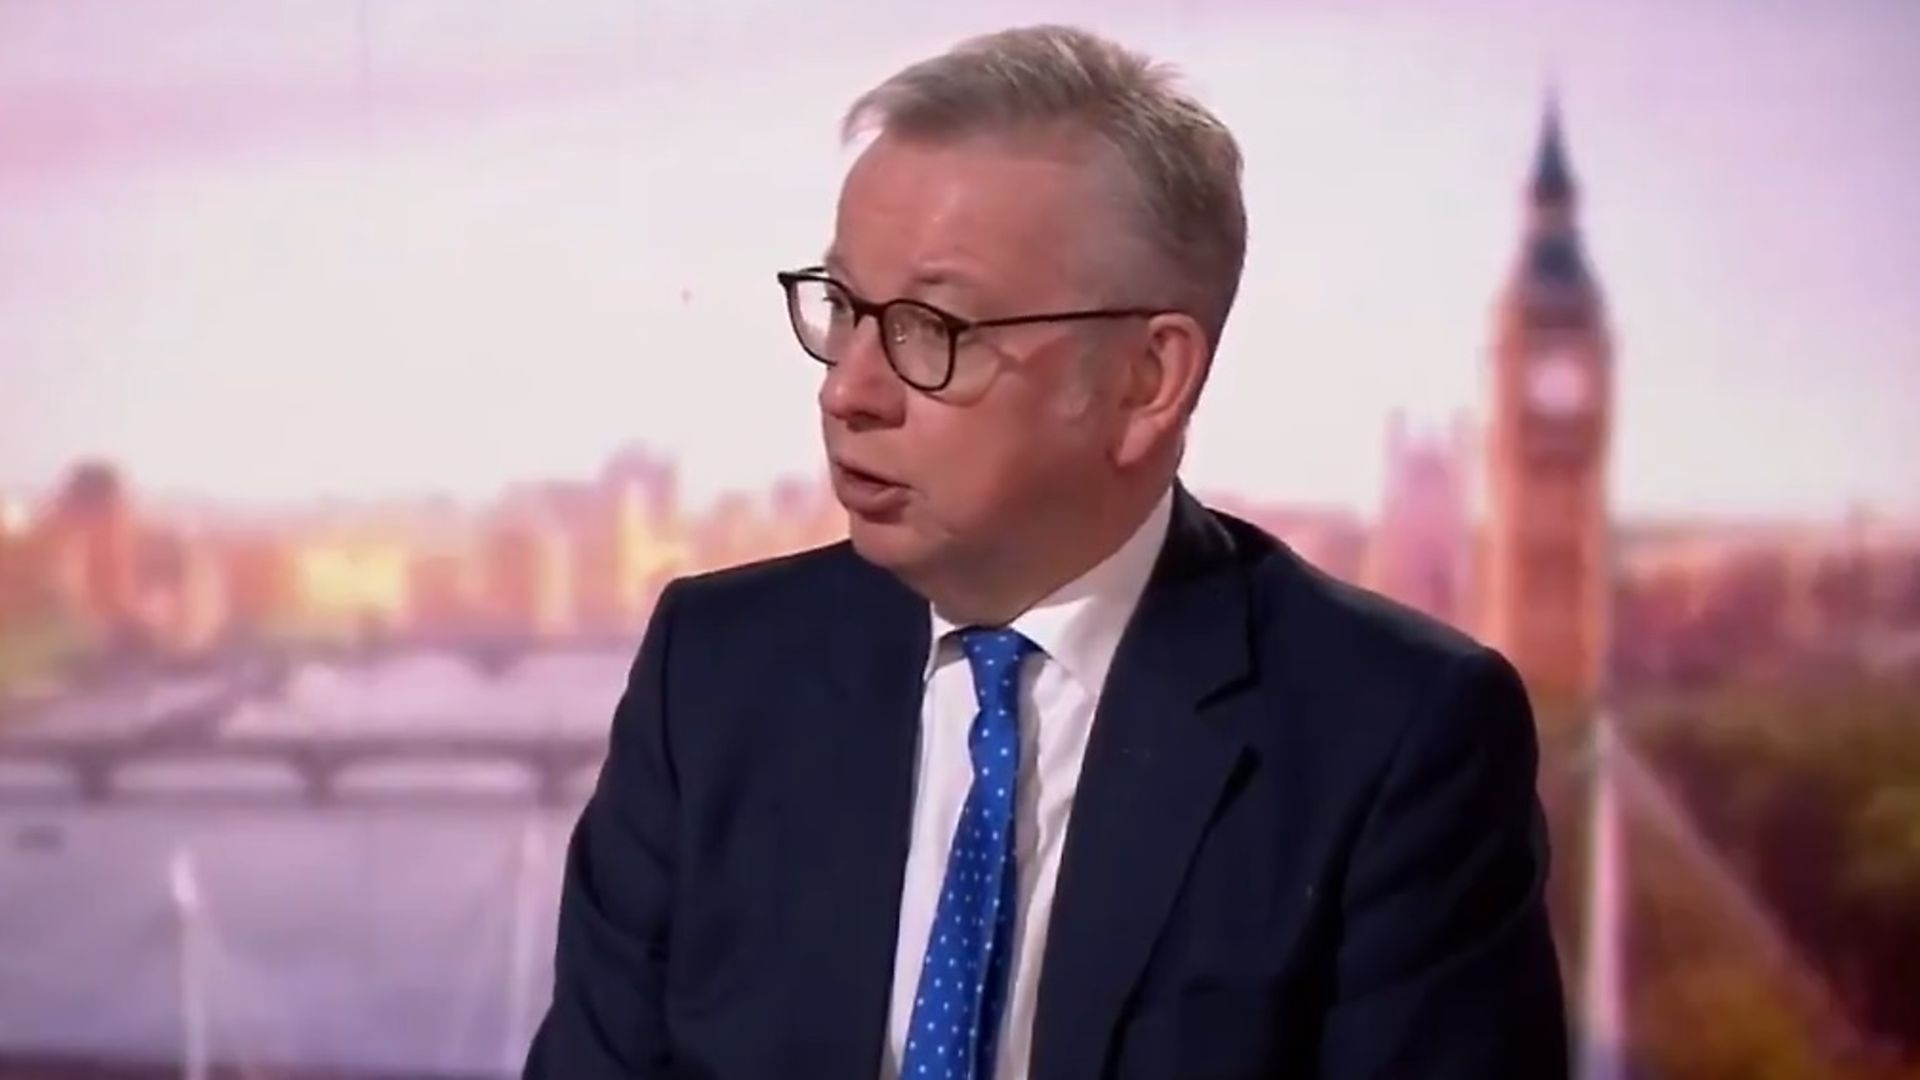 Michael Gove is challenged over Brexit by Andrew Marr - Credit: BBC